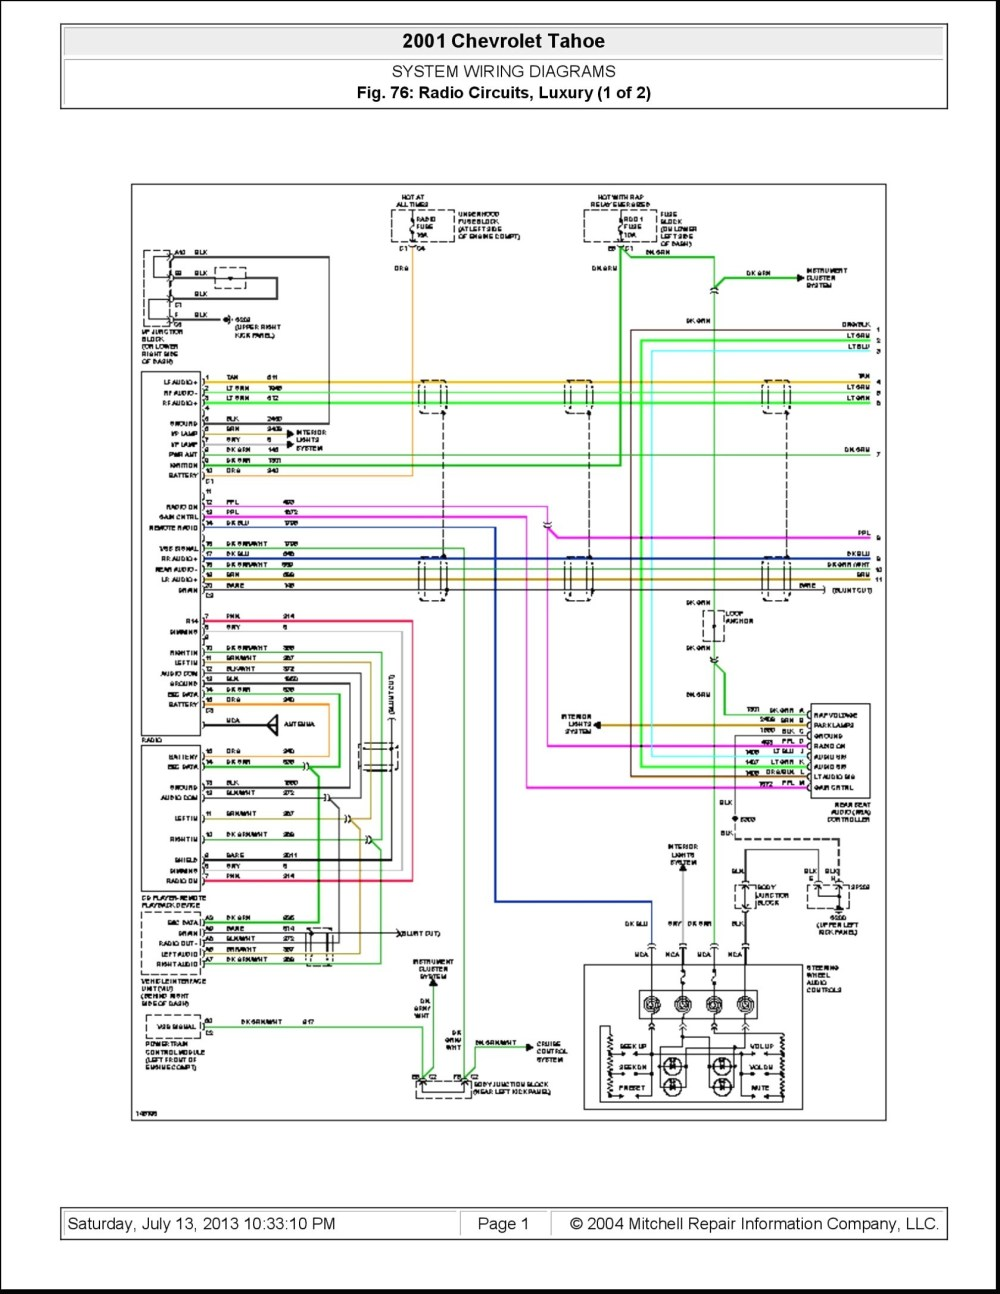 medium resolution of 95 camaro radio wiring diagram wiring diagram centrewiring diagram for 1998 chevrolet tahoe wiring diagram inside1998